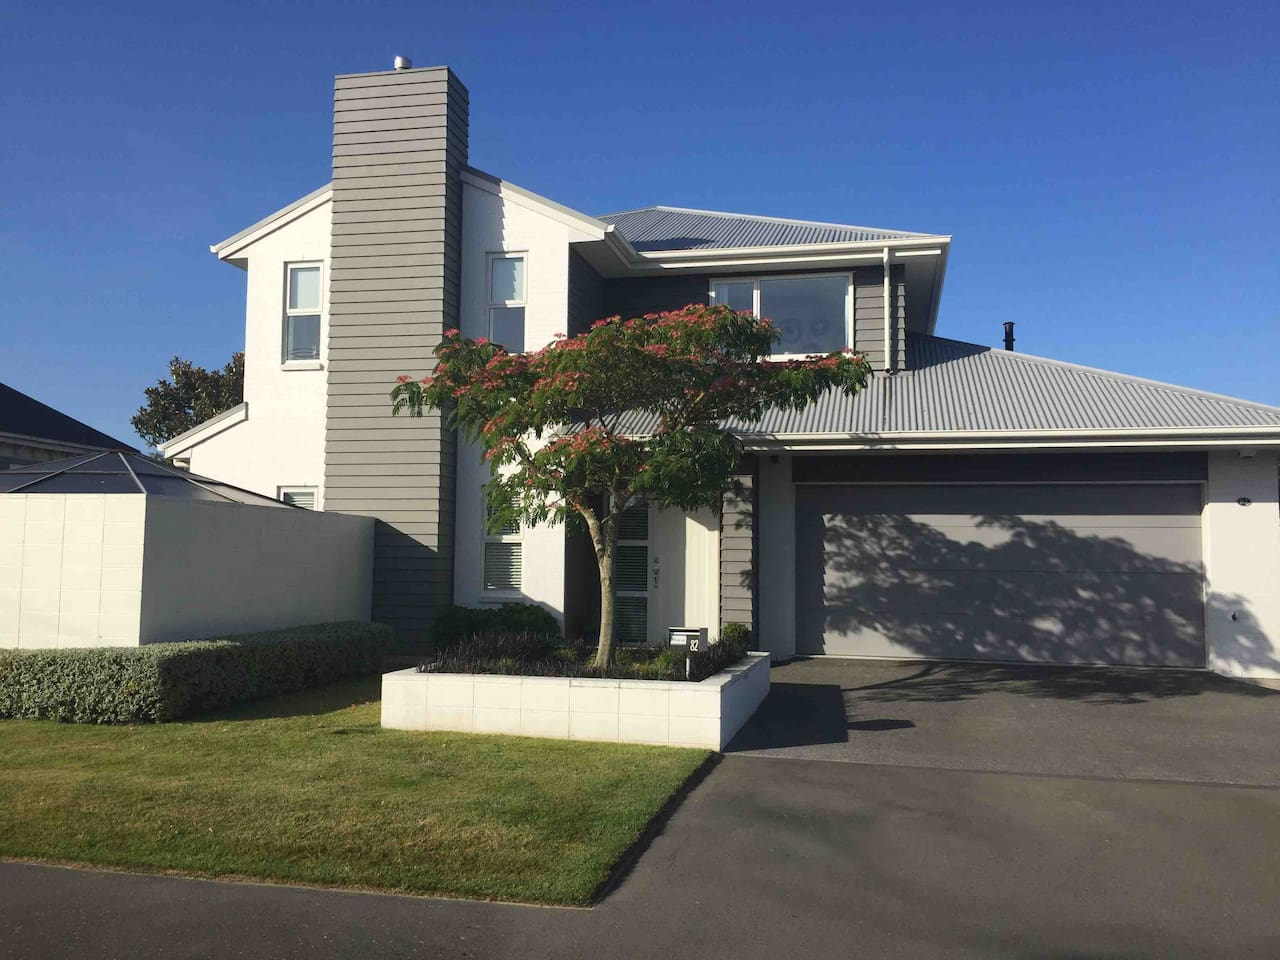 Light and Bright 4 Bed, 2 bath, outside spa family home. Very safe and secure within 4 minute walk of large Christchurch Mall including new food court Langdons Quarter and Hoyts cinema. Kids can go to/from on their own without issue